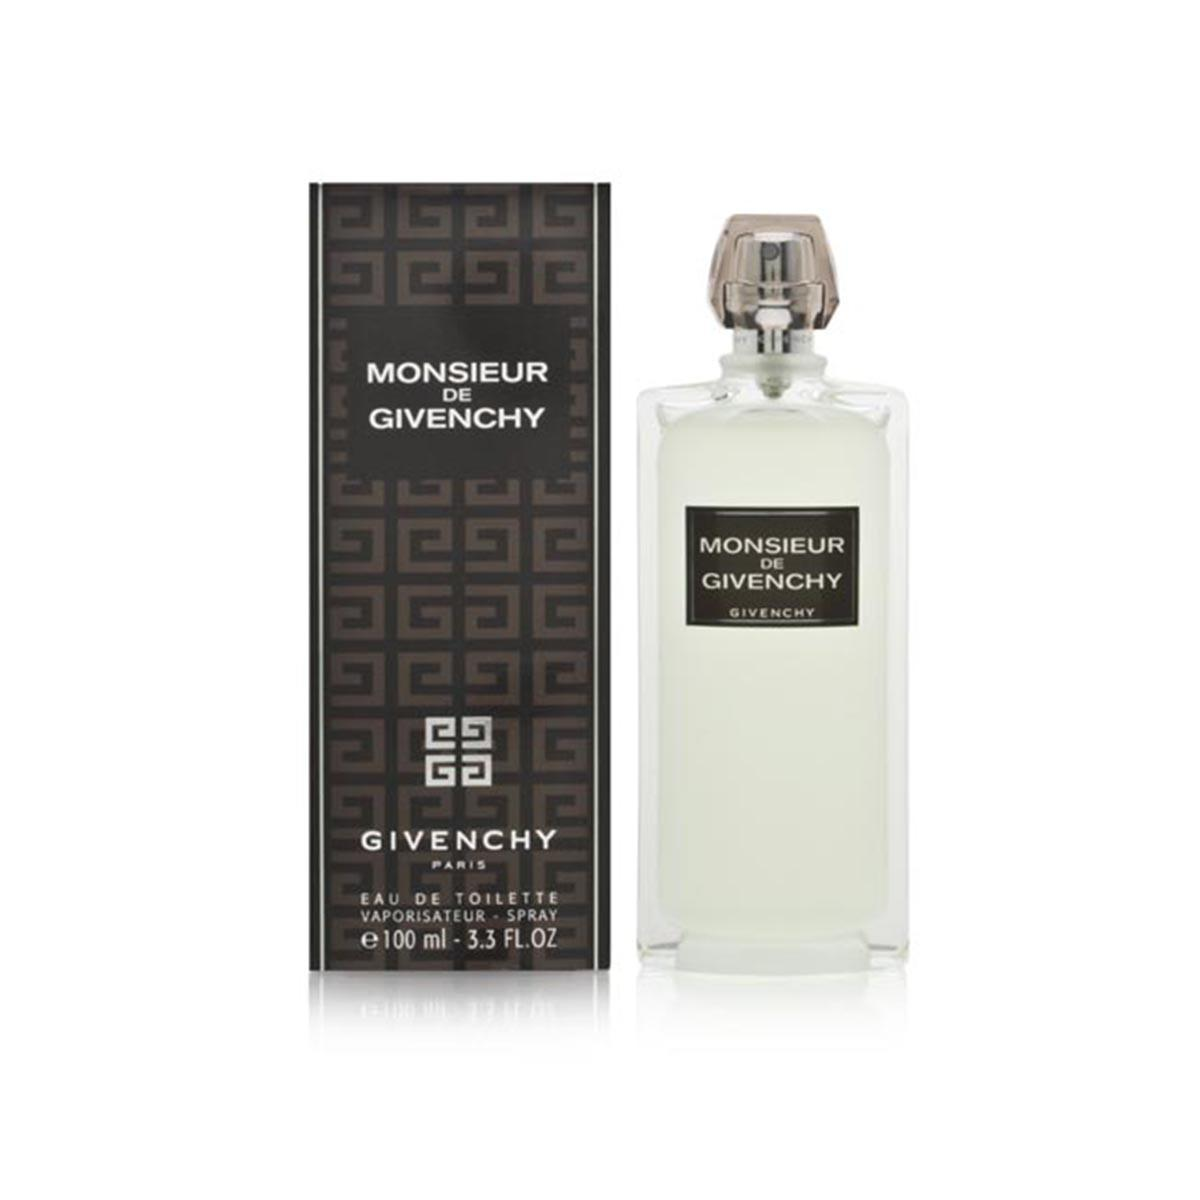 Givenchy fragrances Monsieur De Eau De Toilette 100ml